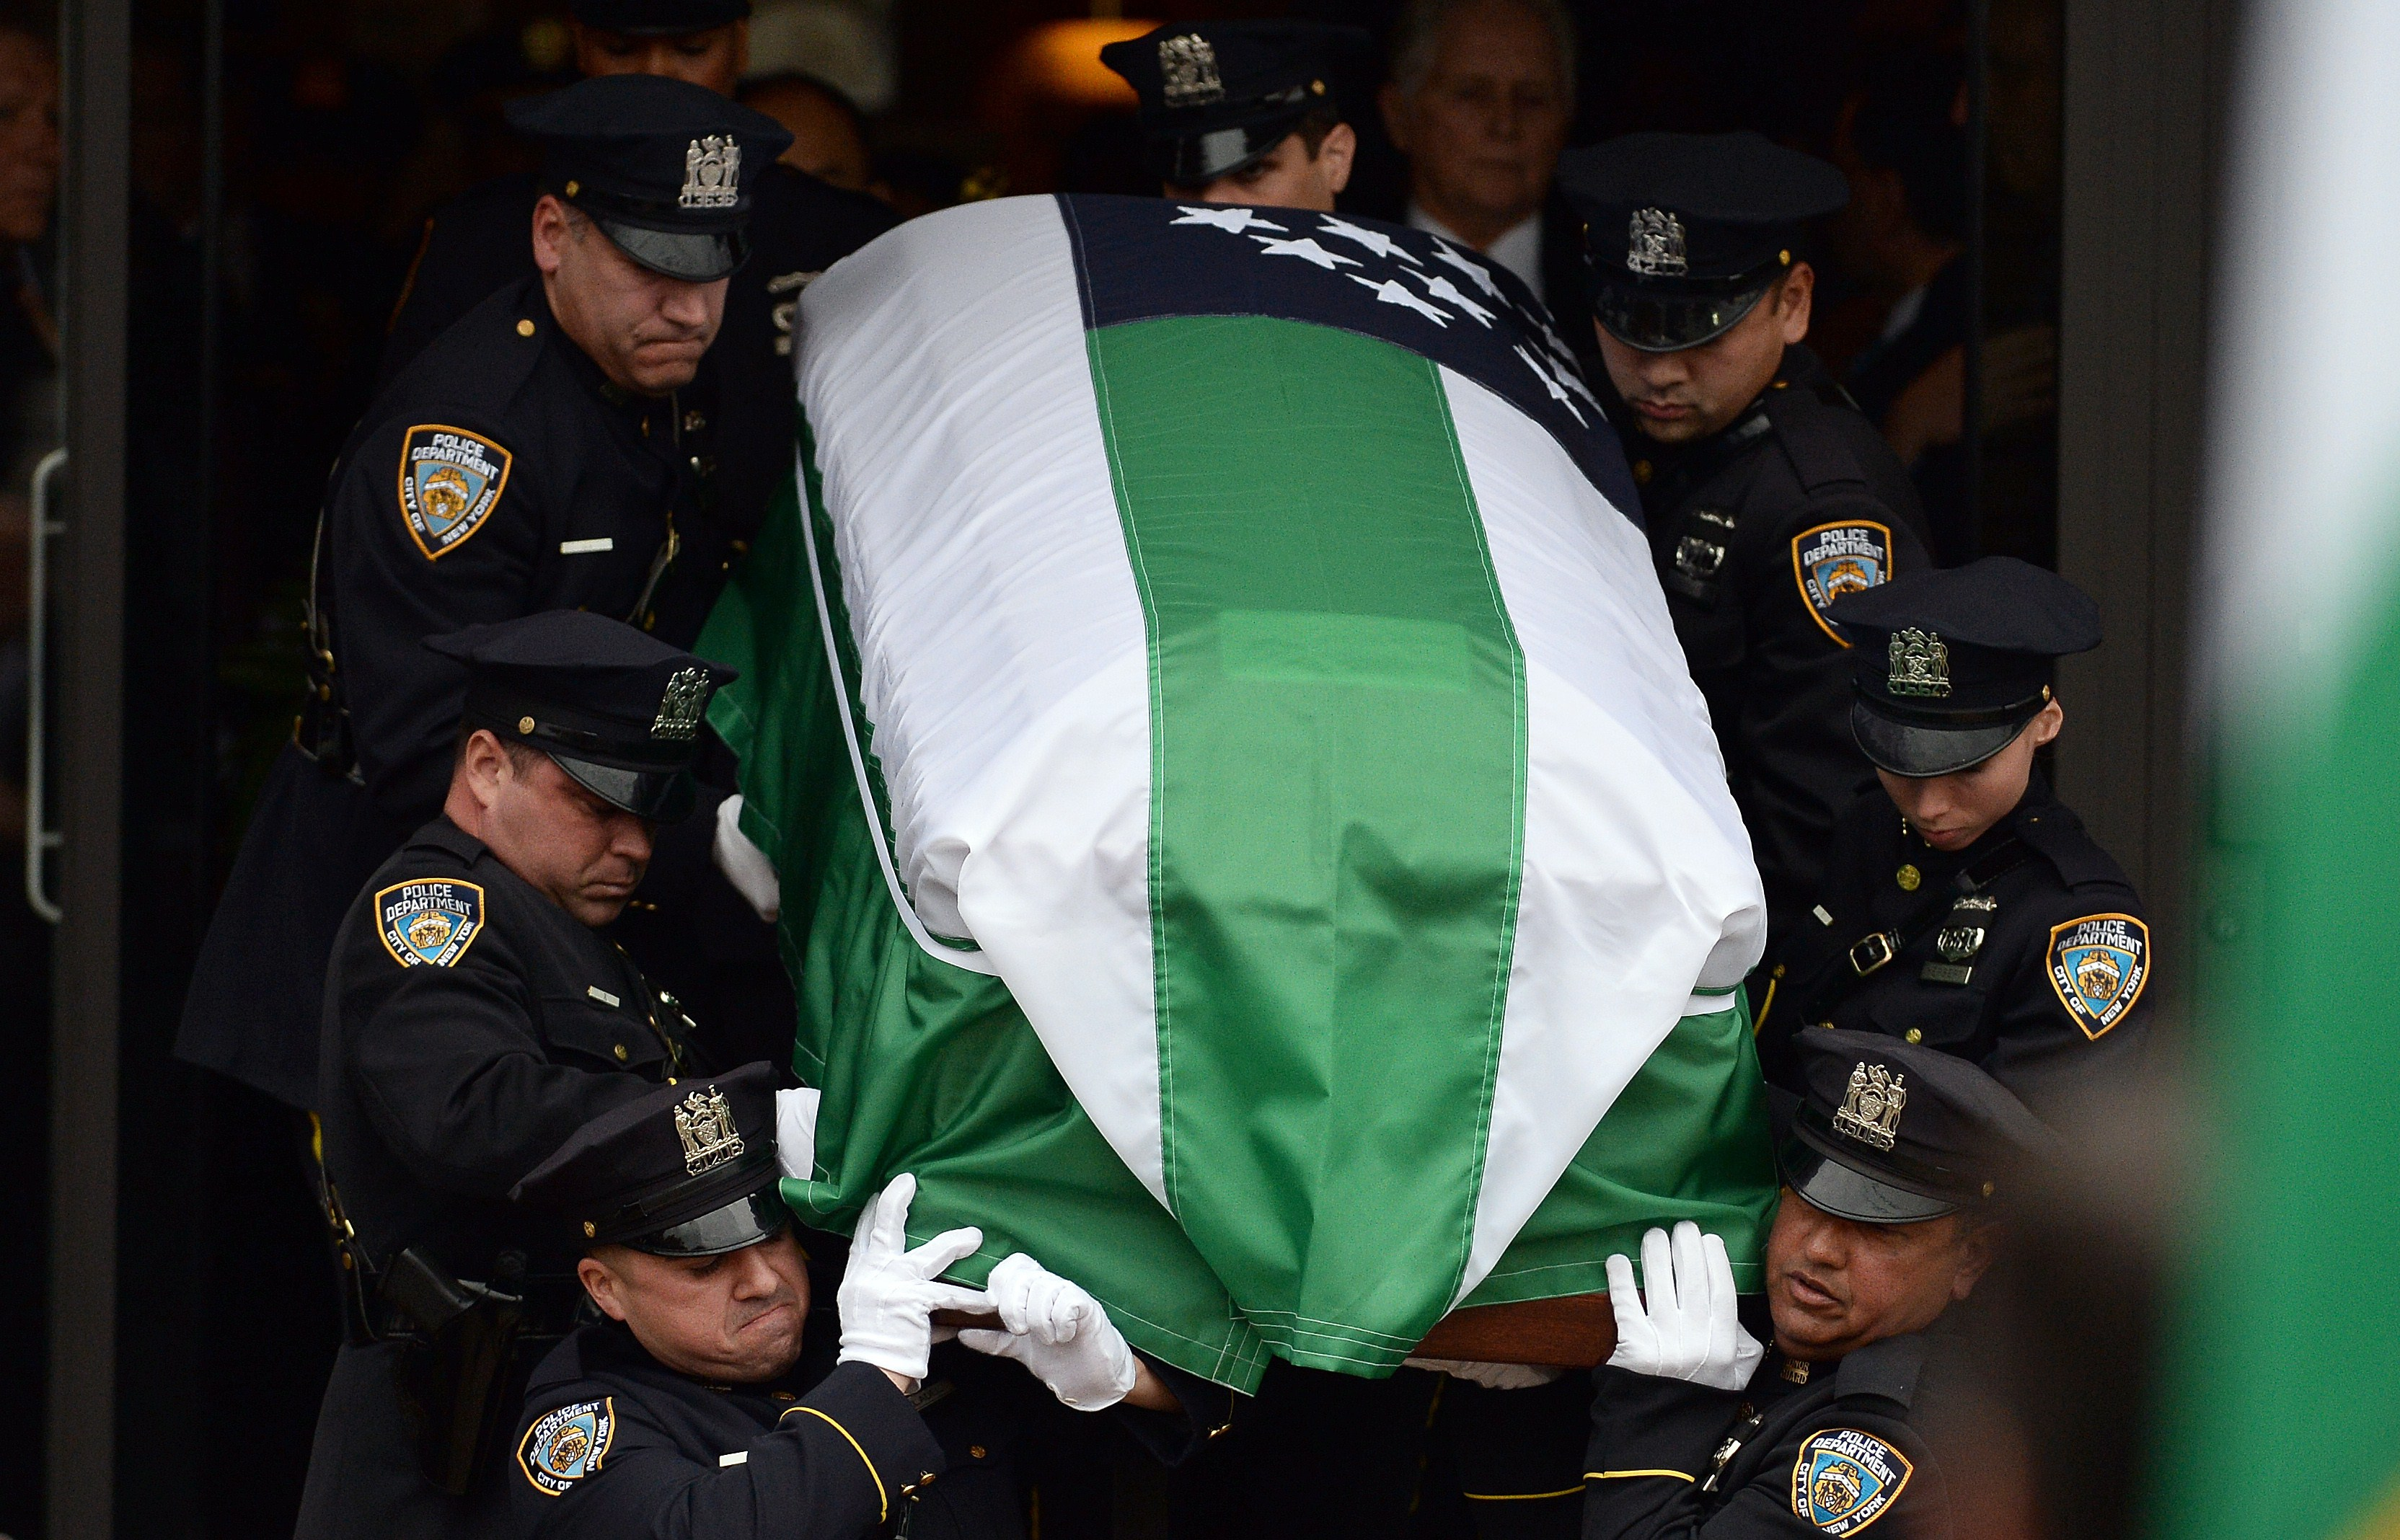 New York Police Department officers carry the casket of their fellow officer Wenjian Liu during his funeral in New York's borough of Brooklyn on January 4, 2015. (Getty)